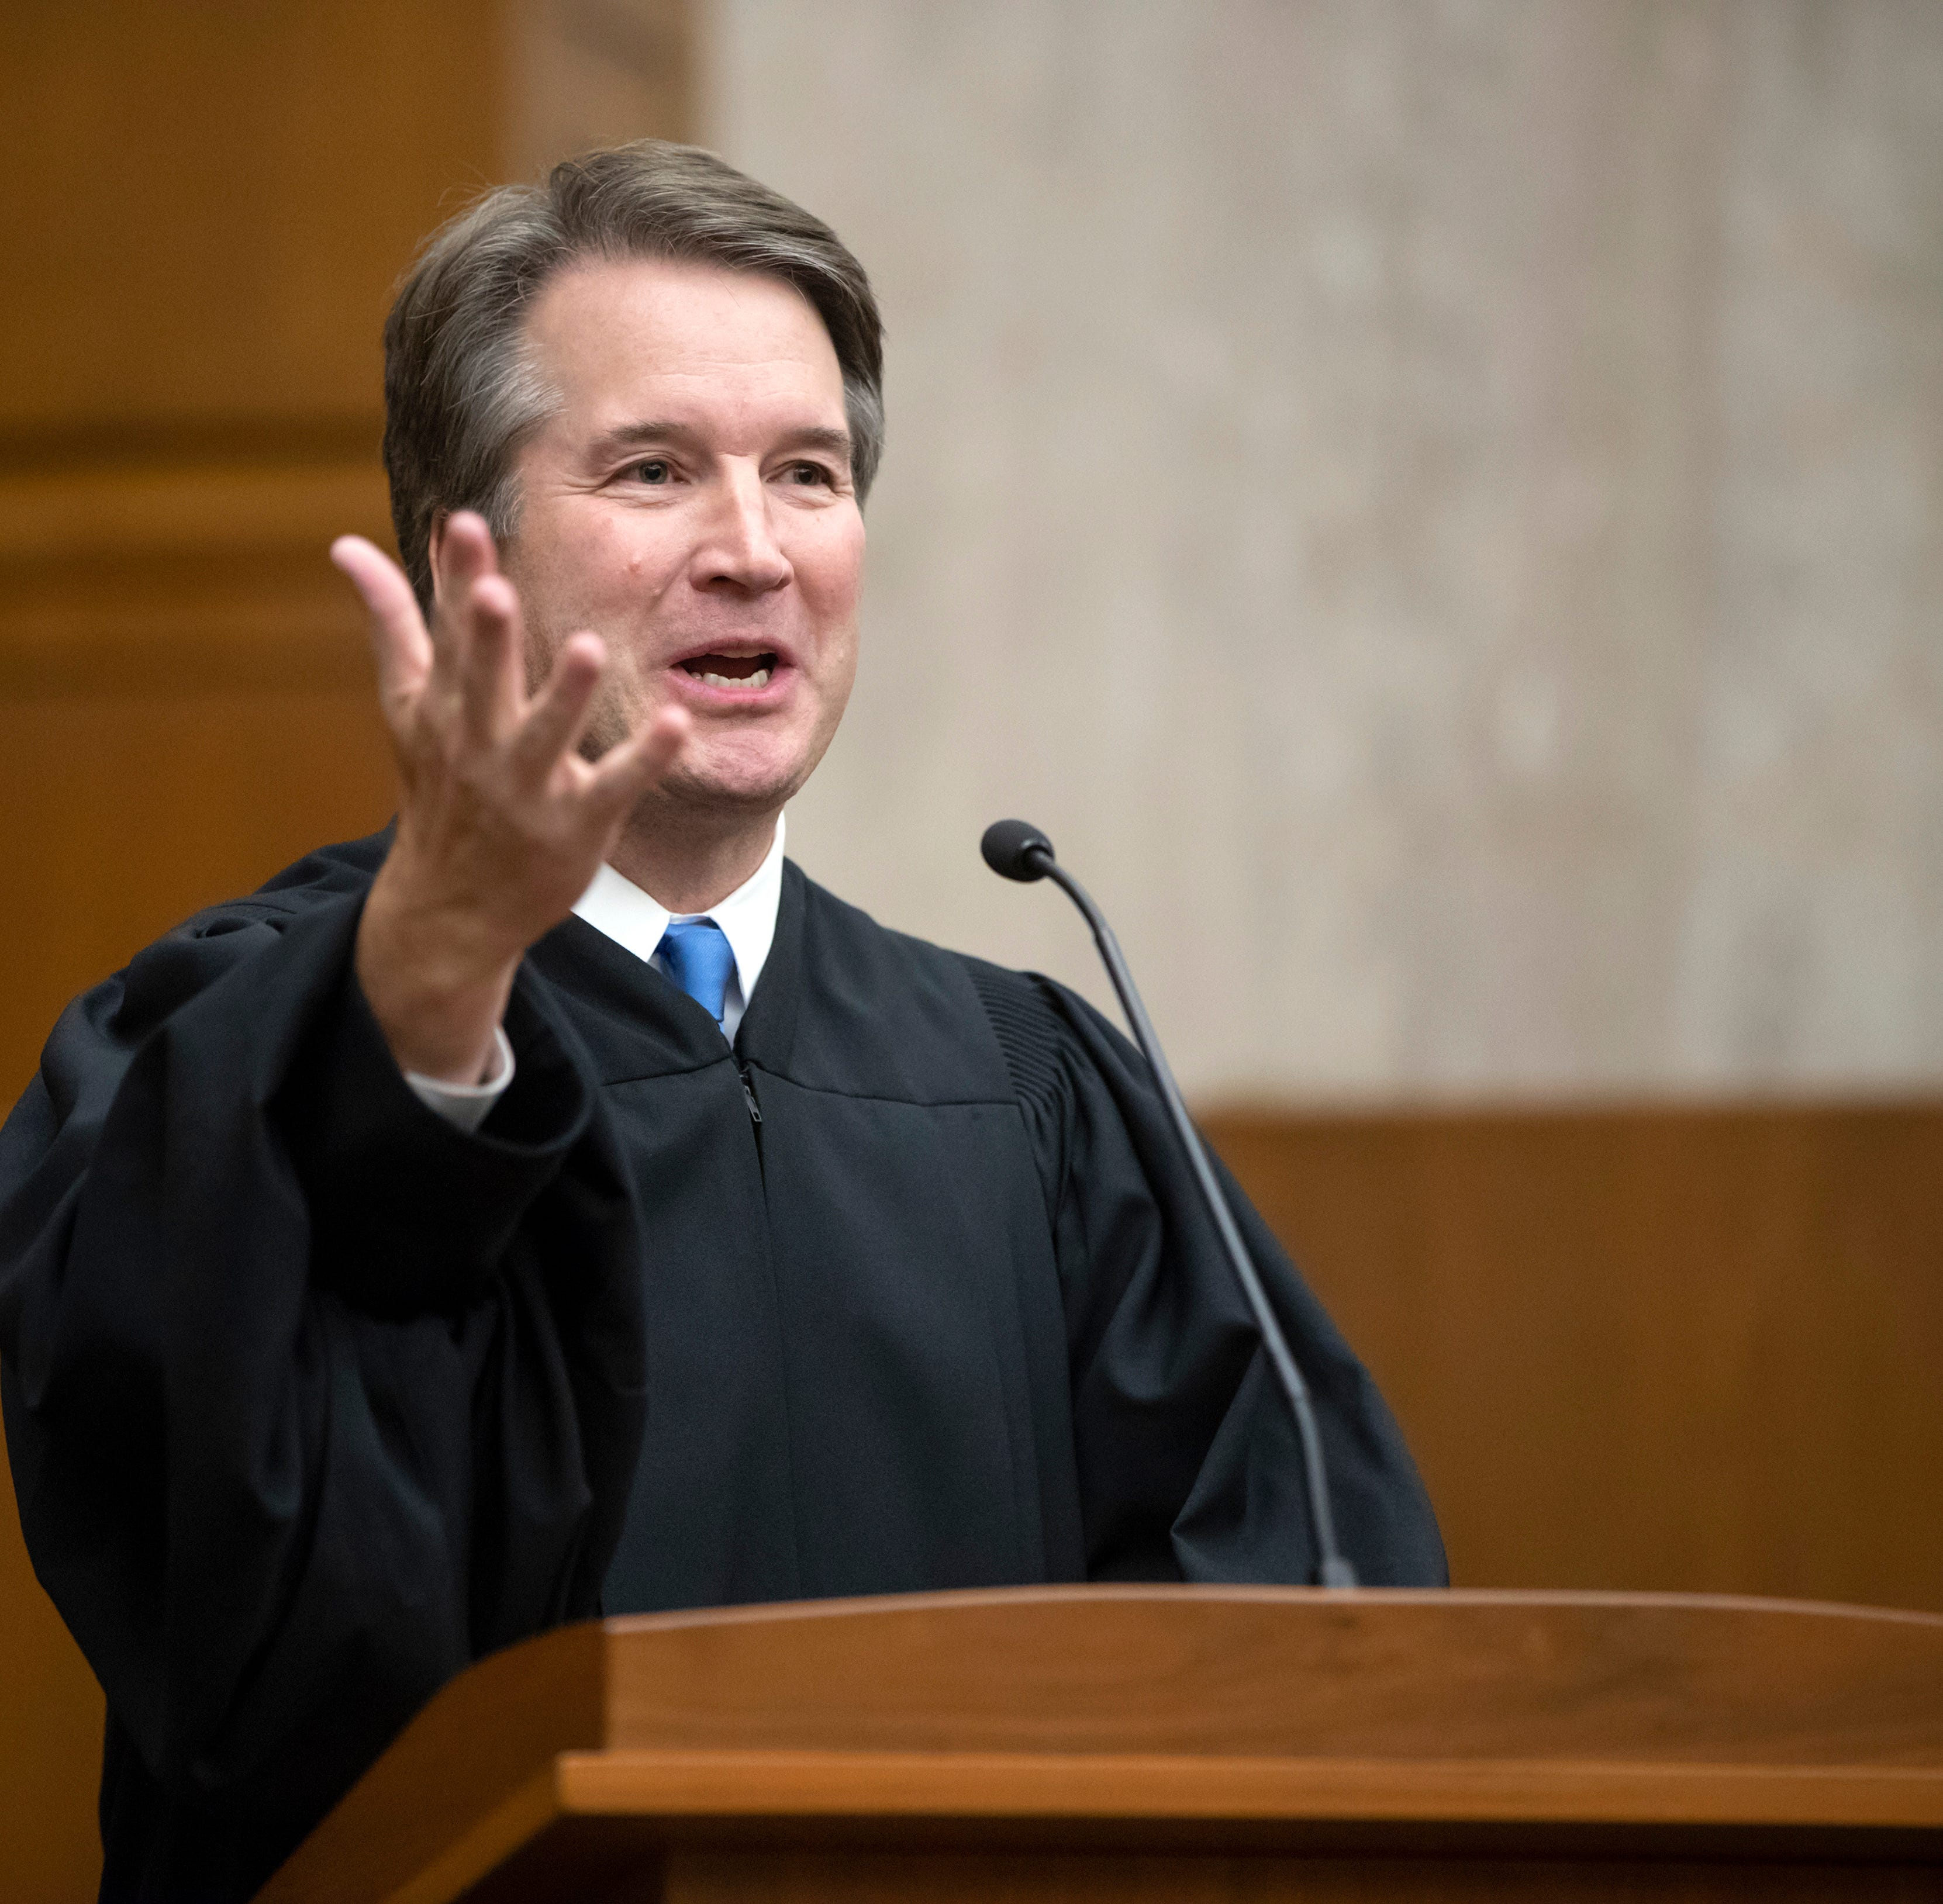 Letter: Vote no on Kavanaugh for Supreme Court, no president above the law